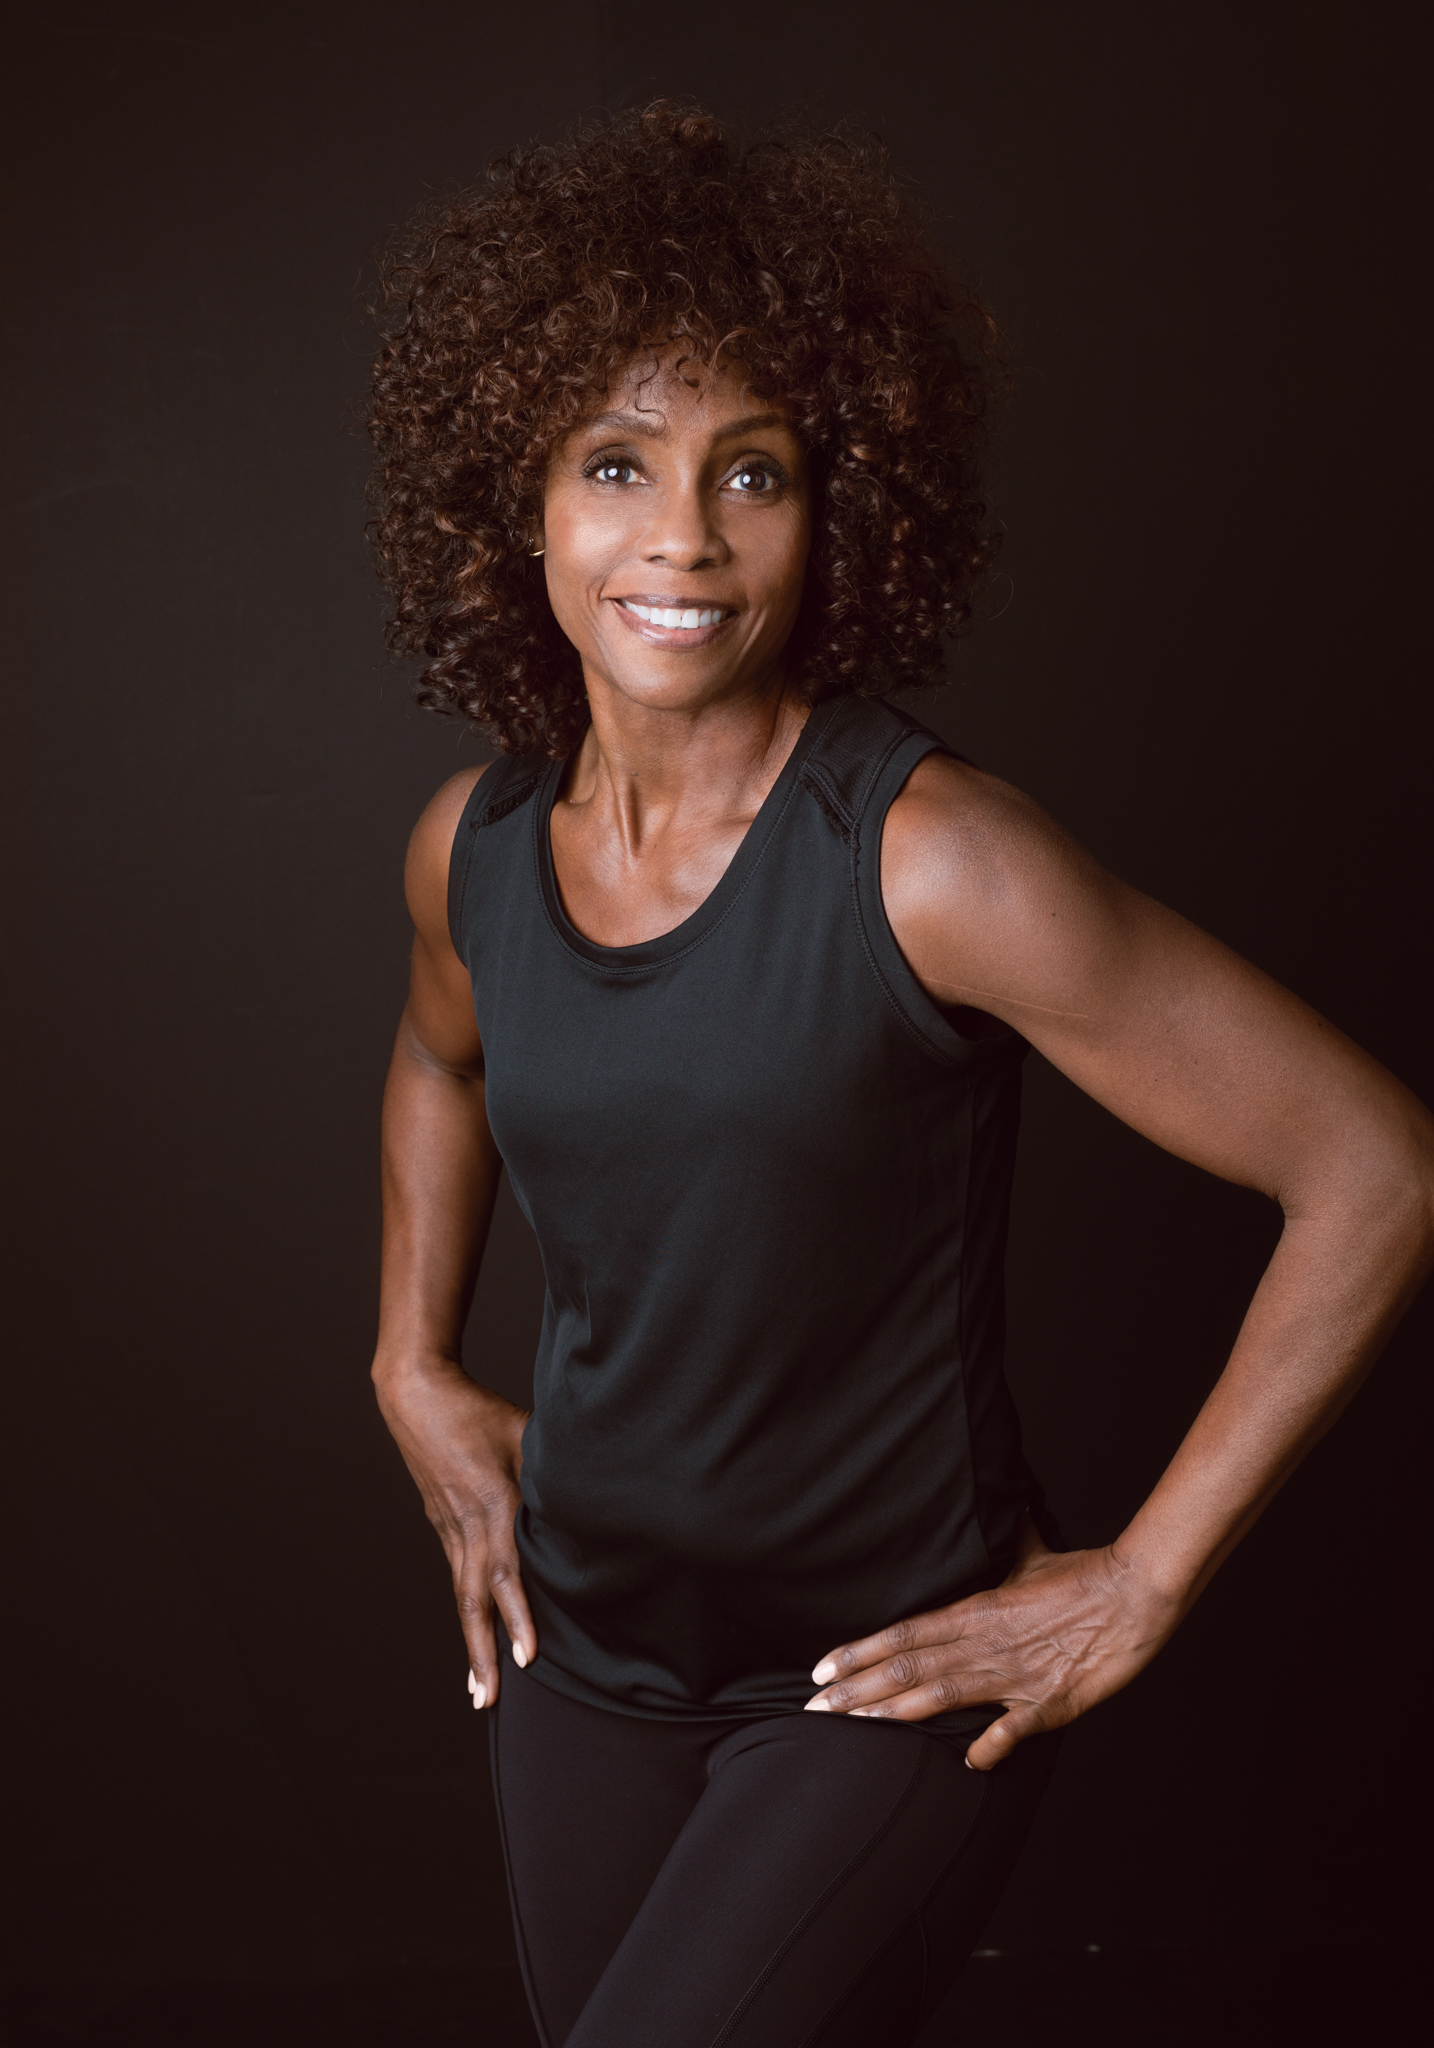 Black woman athlete standing in front of a brown background.